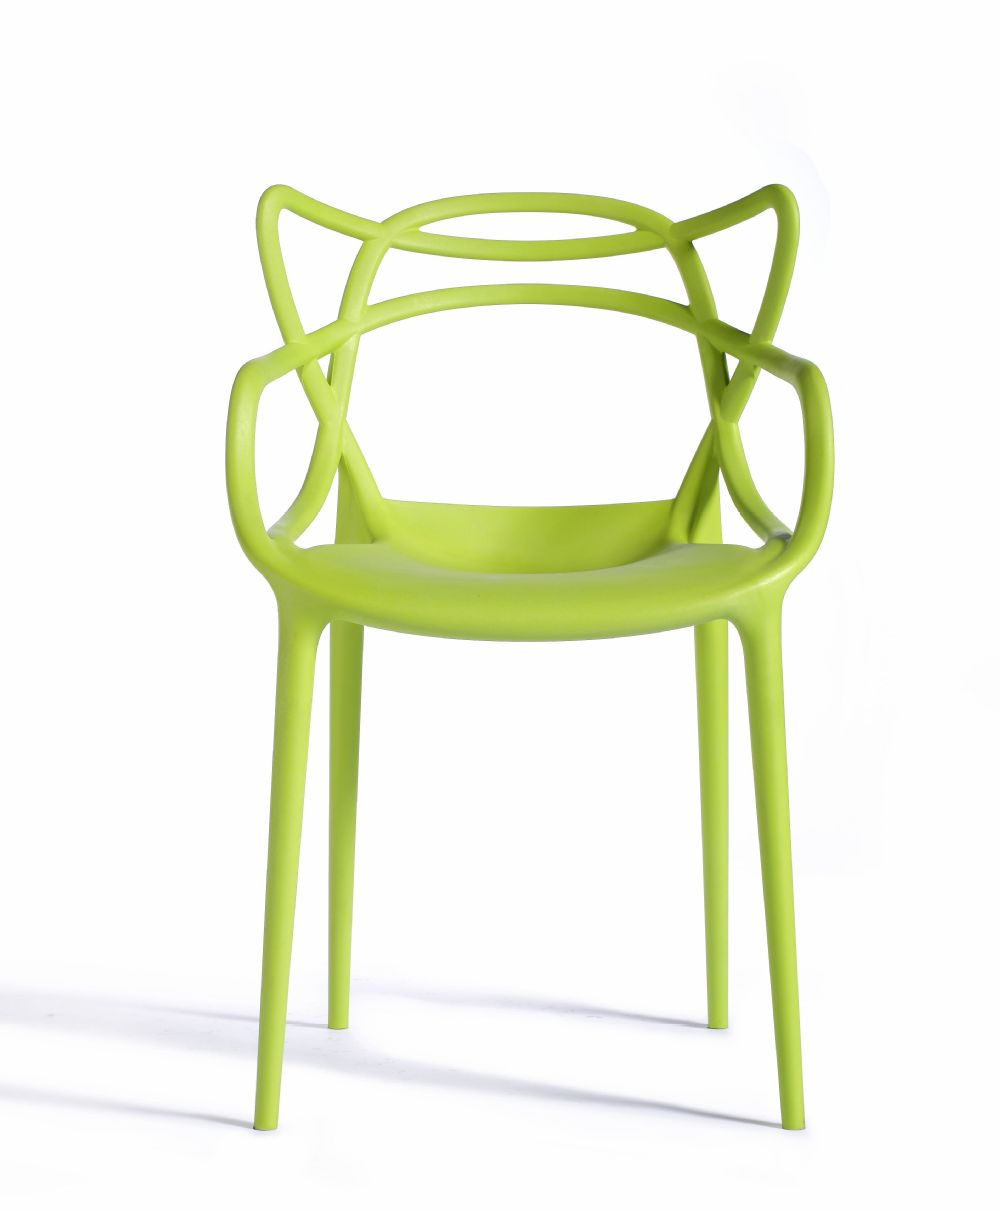 Design salon jardin plastique pas cher 38 paris salon for Chaise de jardin plastique blanc